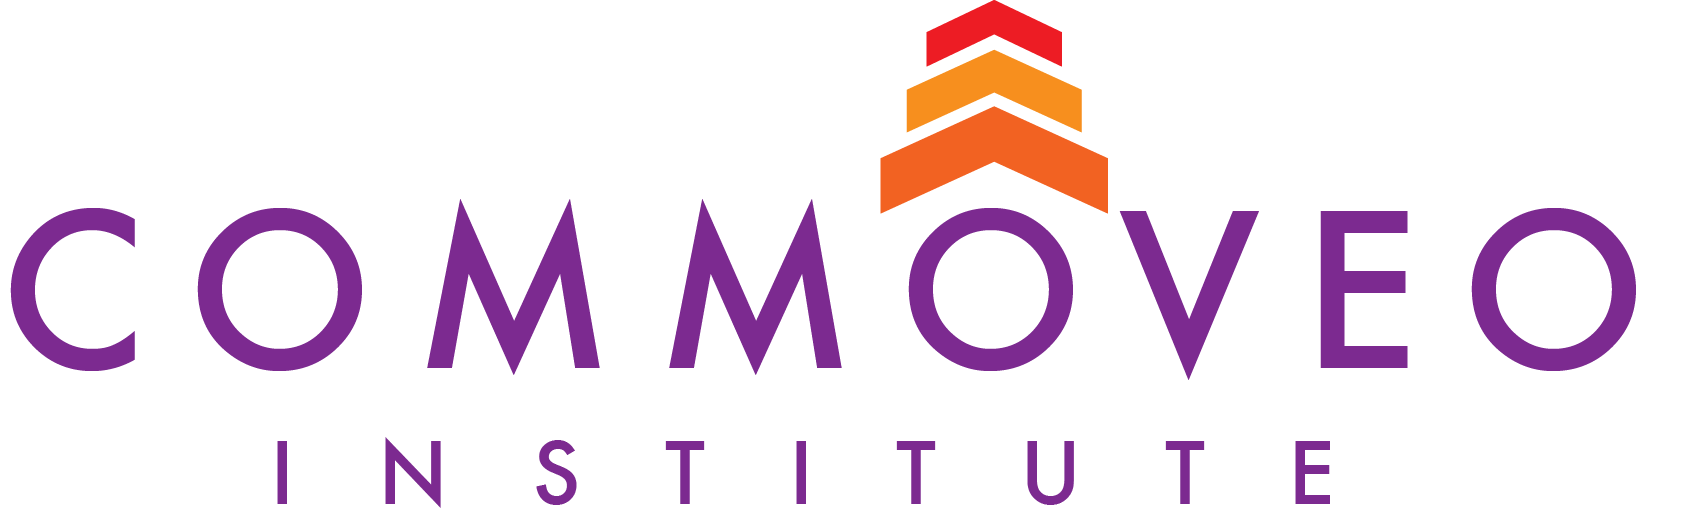 The Commoveo Institute